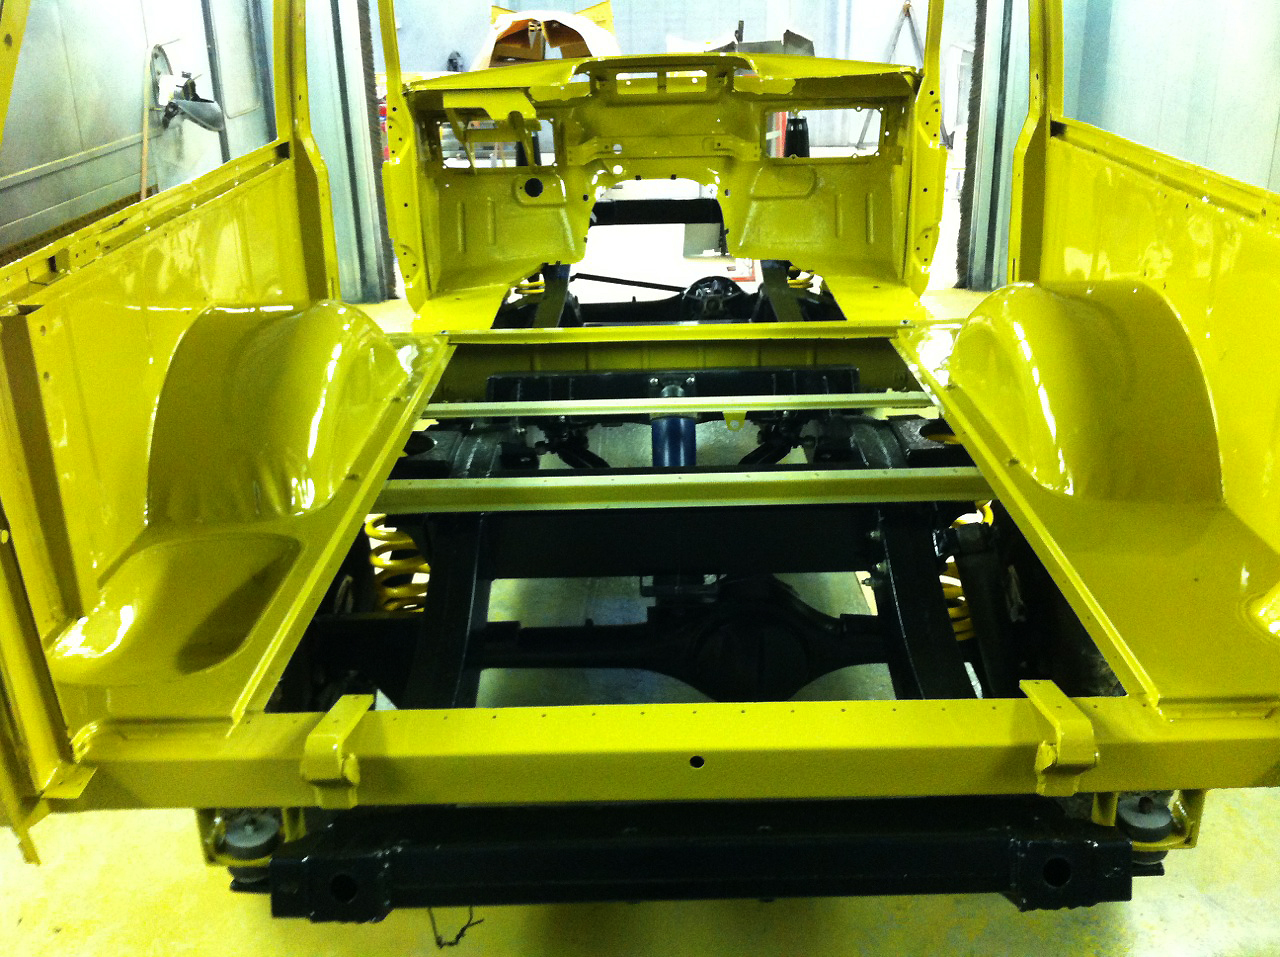 Mitchell motors another early land rover range rover - Range rover classic interior parts ...